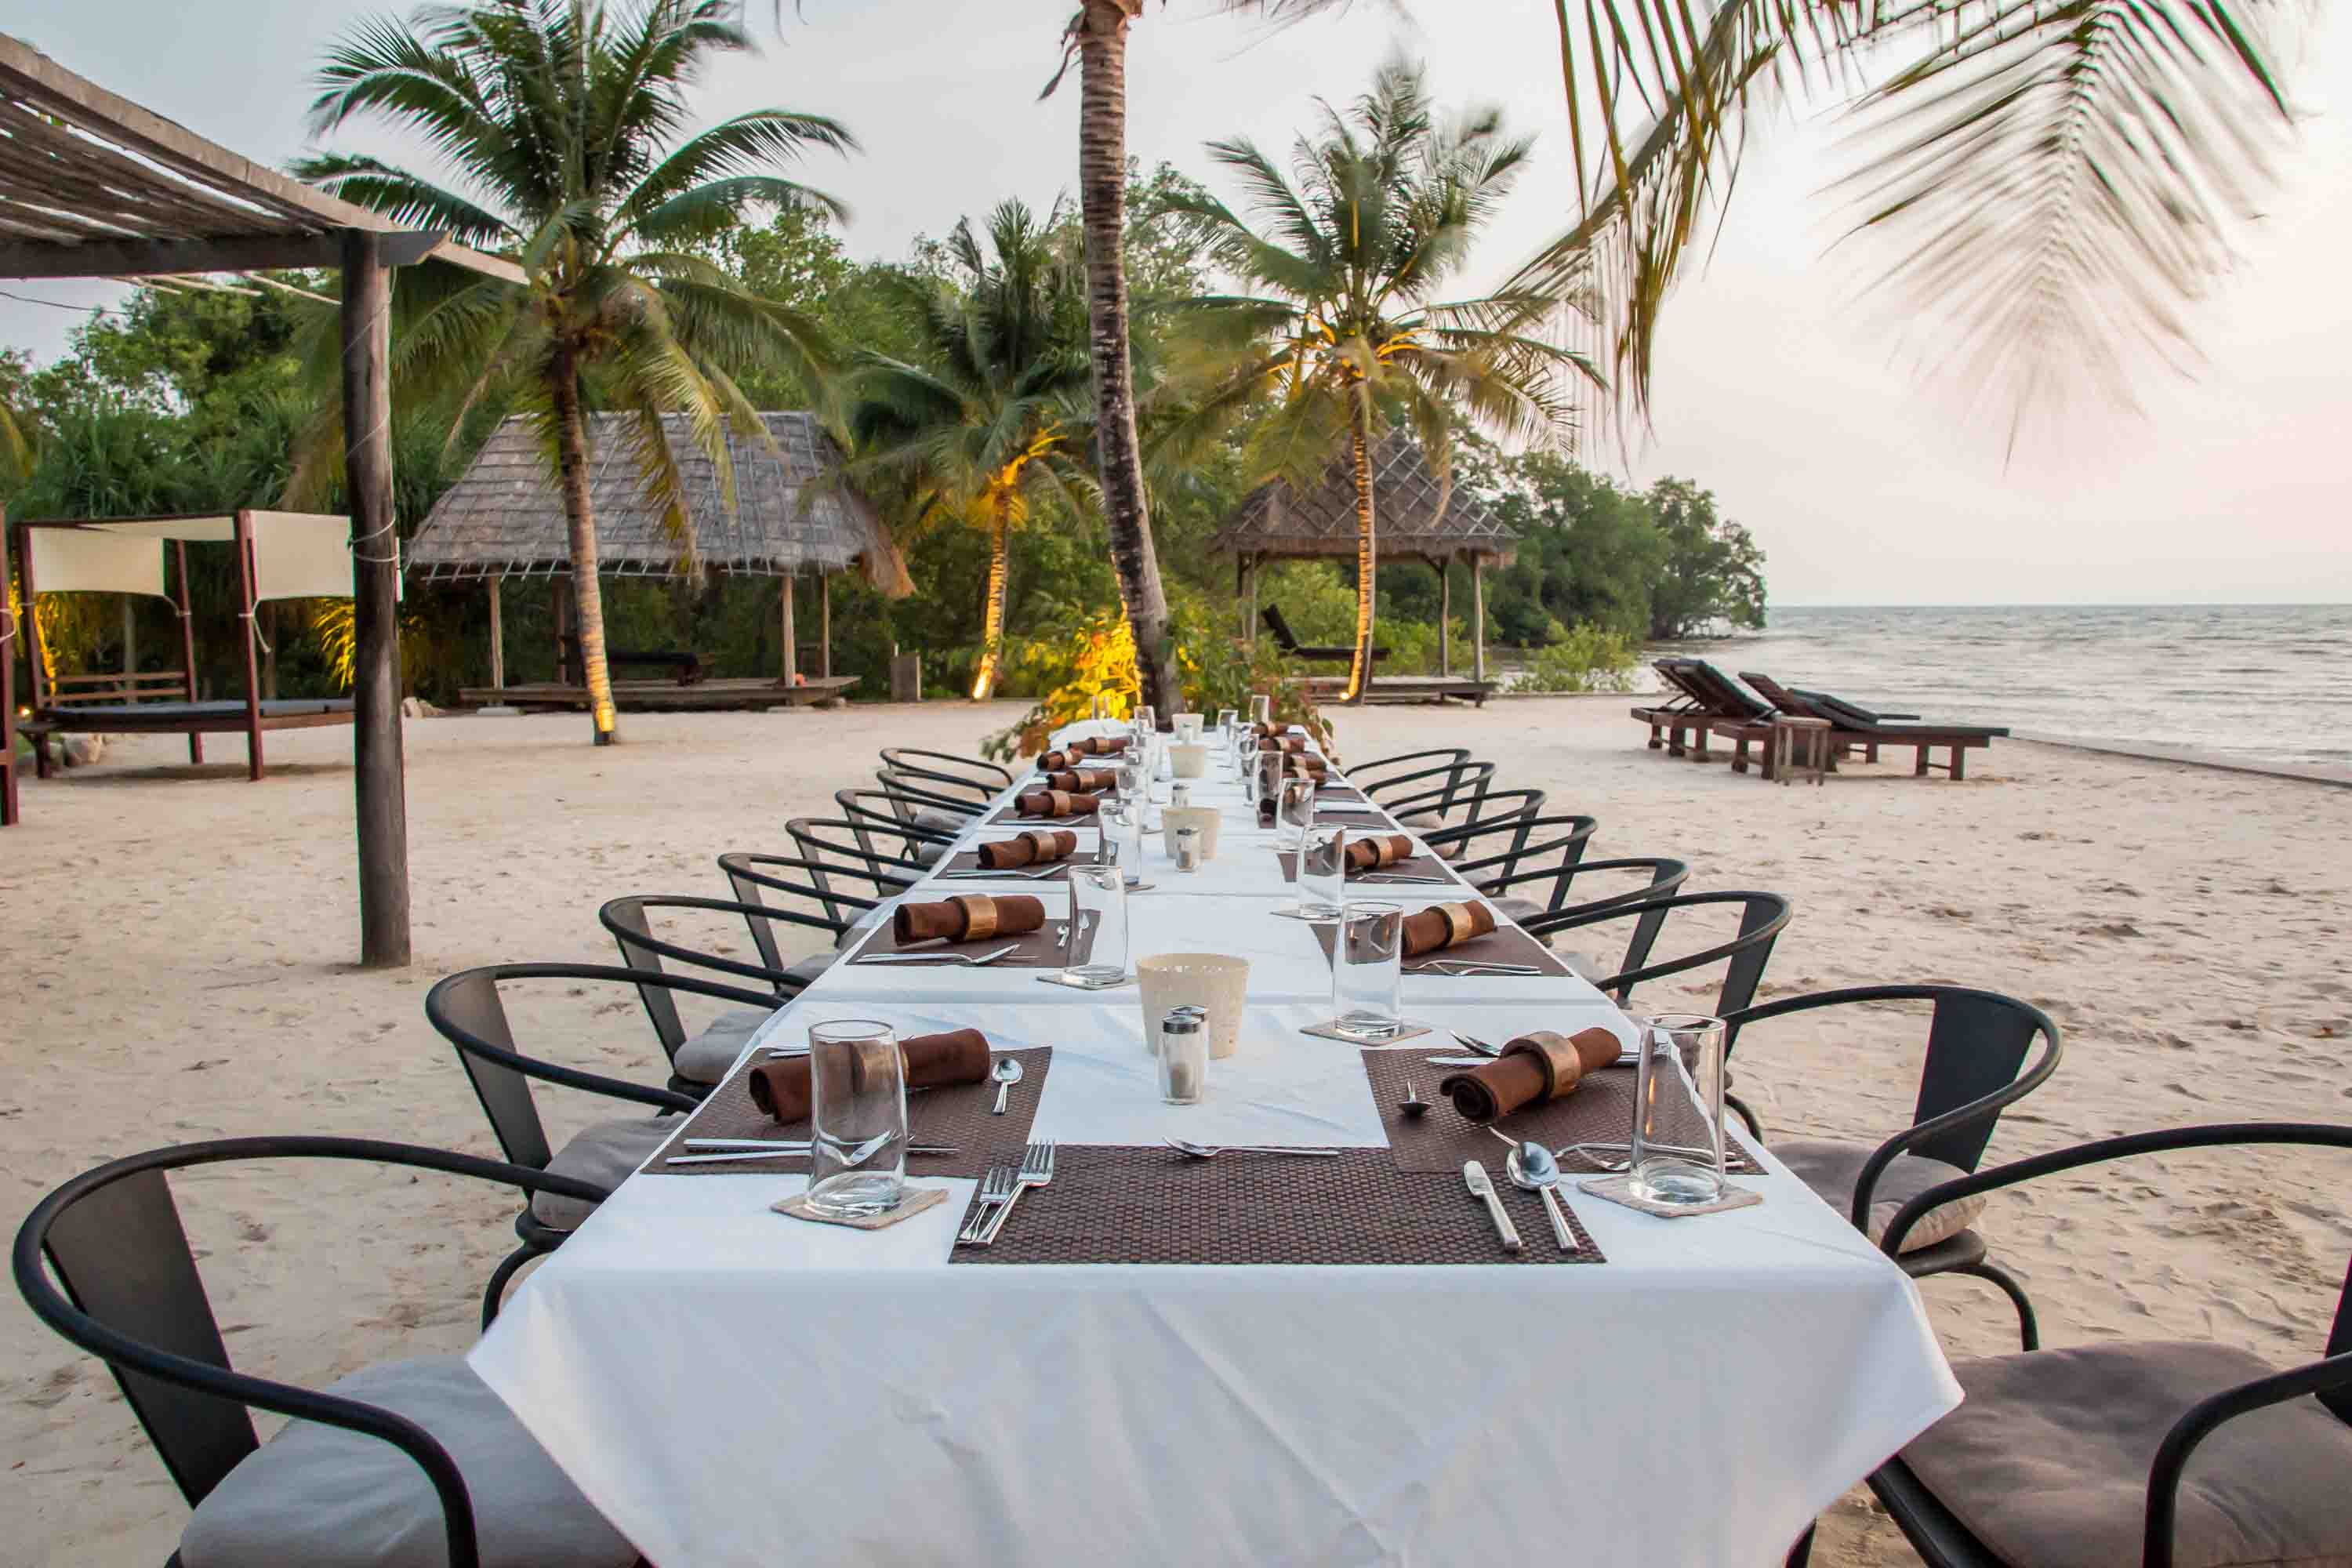 Beach BBQ Kep Seafood Crab Dining Offers